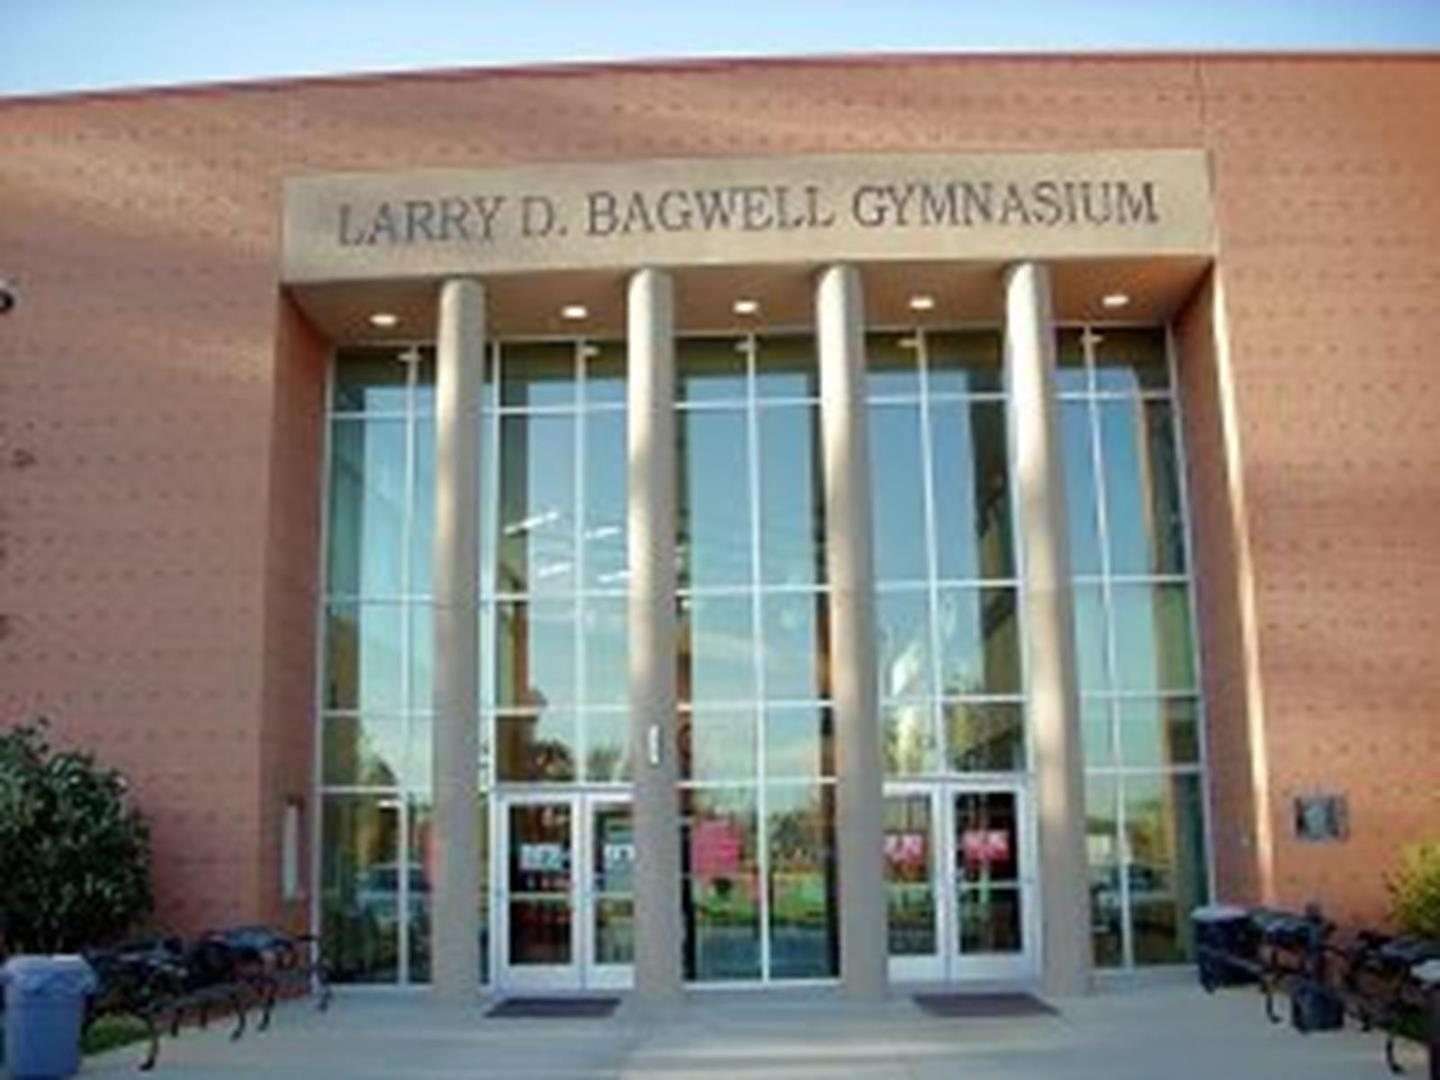 Larry D. Bagwell Gym